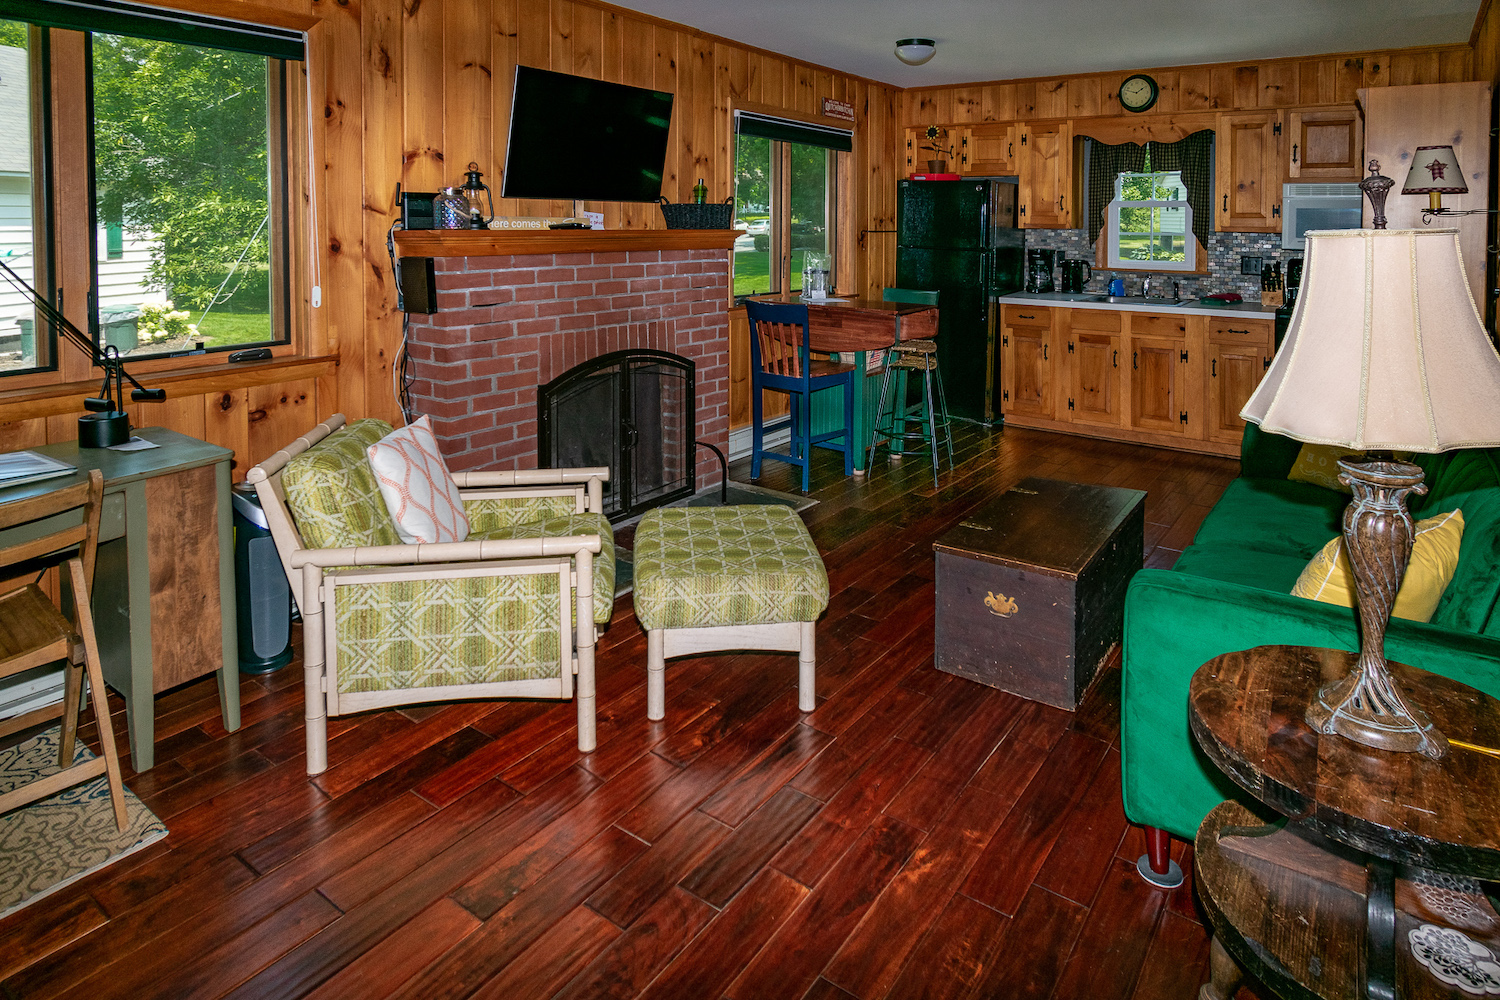 Lake George vacation cabin rental #28 knotty pine living room with brick fireplace and TV at Takundewide Cottages